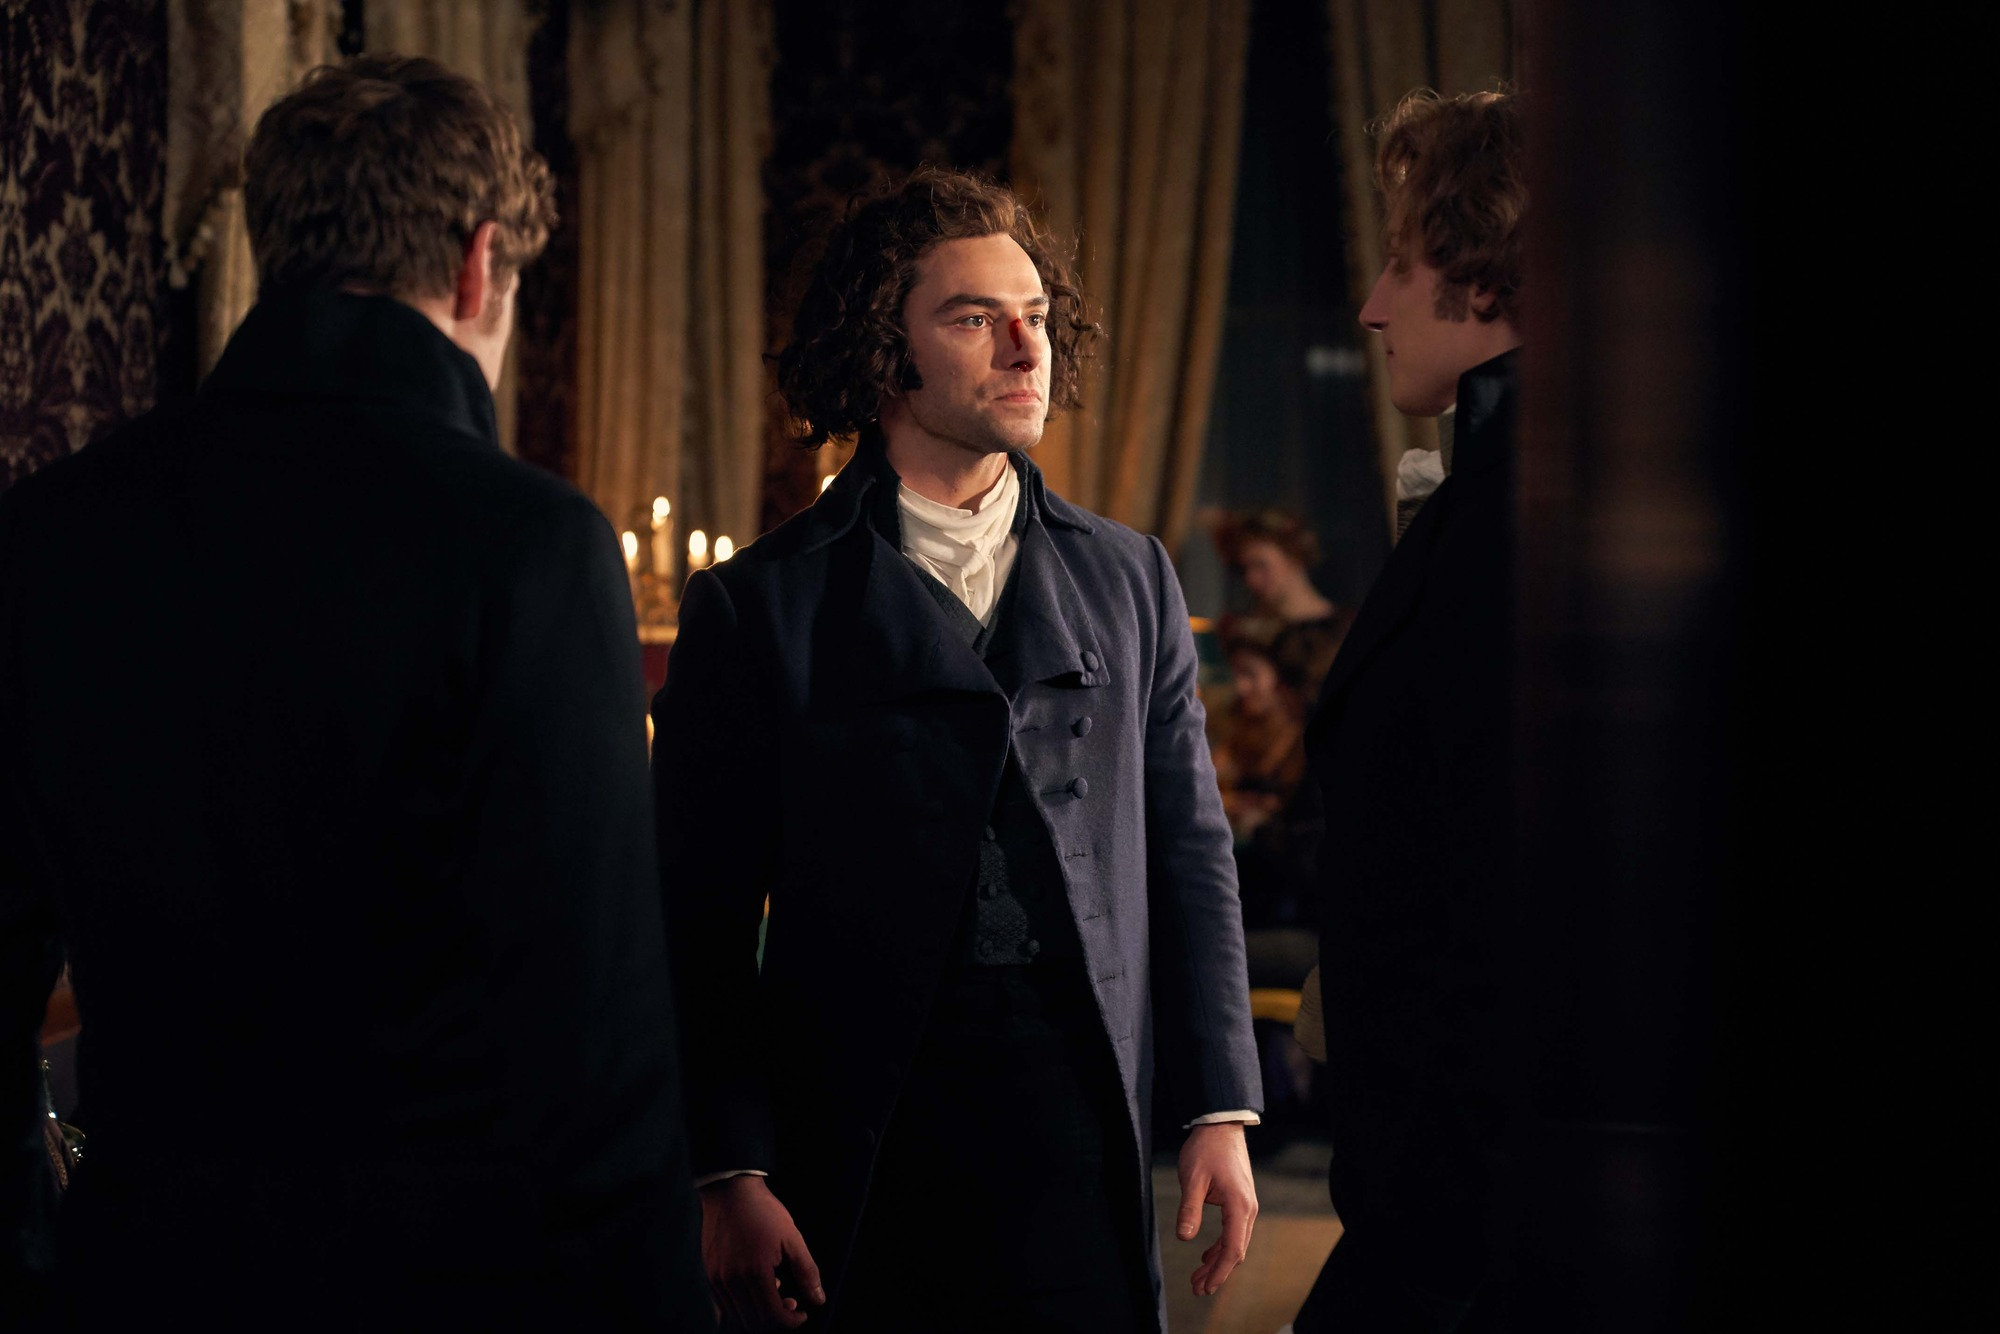 Poldark episode eight review: A powerful, heartbreaking end to a series full of tragedy